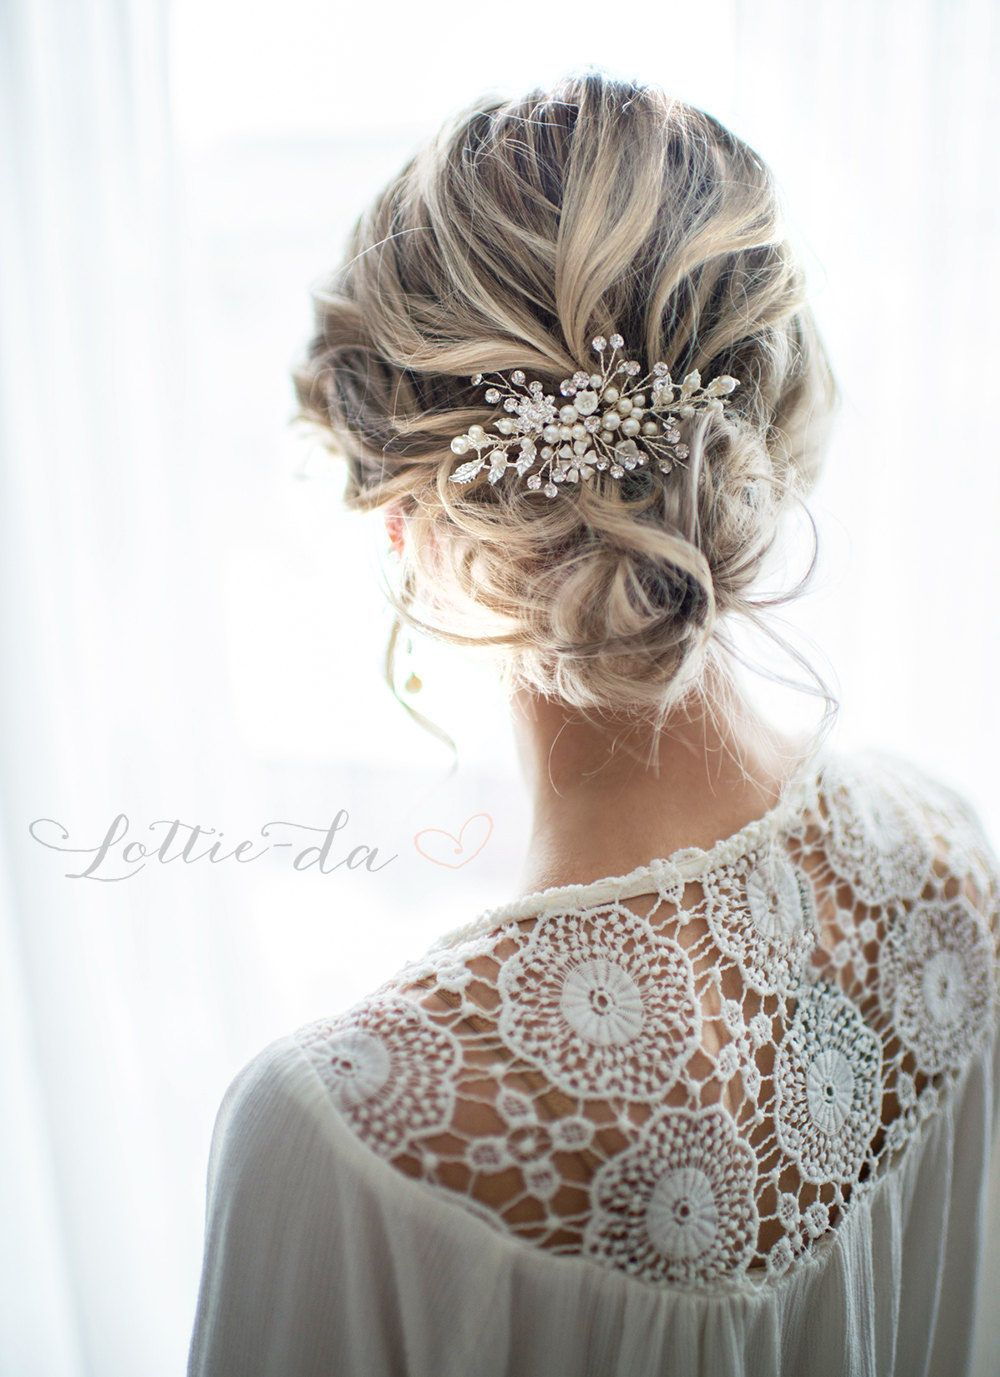 30 Chic Vintage Wedding Hairstyles and Bridal Hair Accessories ...